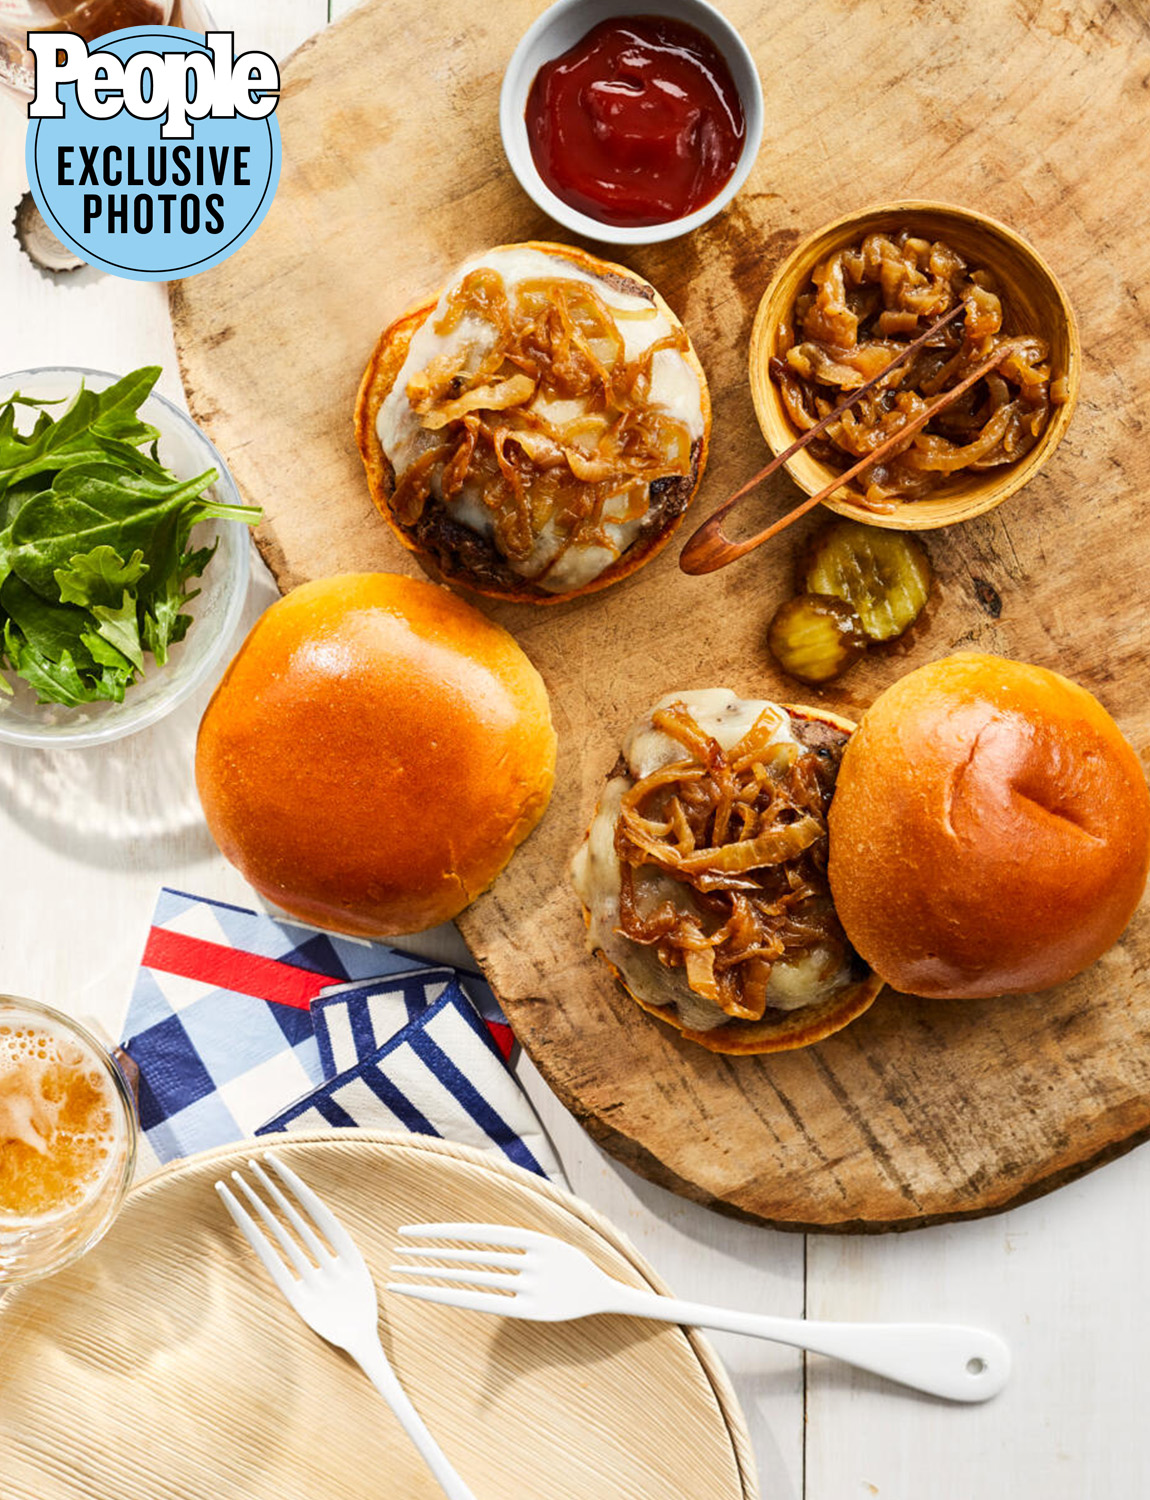 Tom Colicchio's Burgers with Caramelized Balsamic Onions